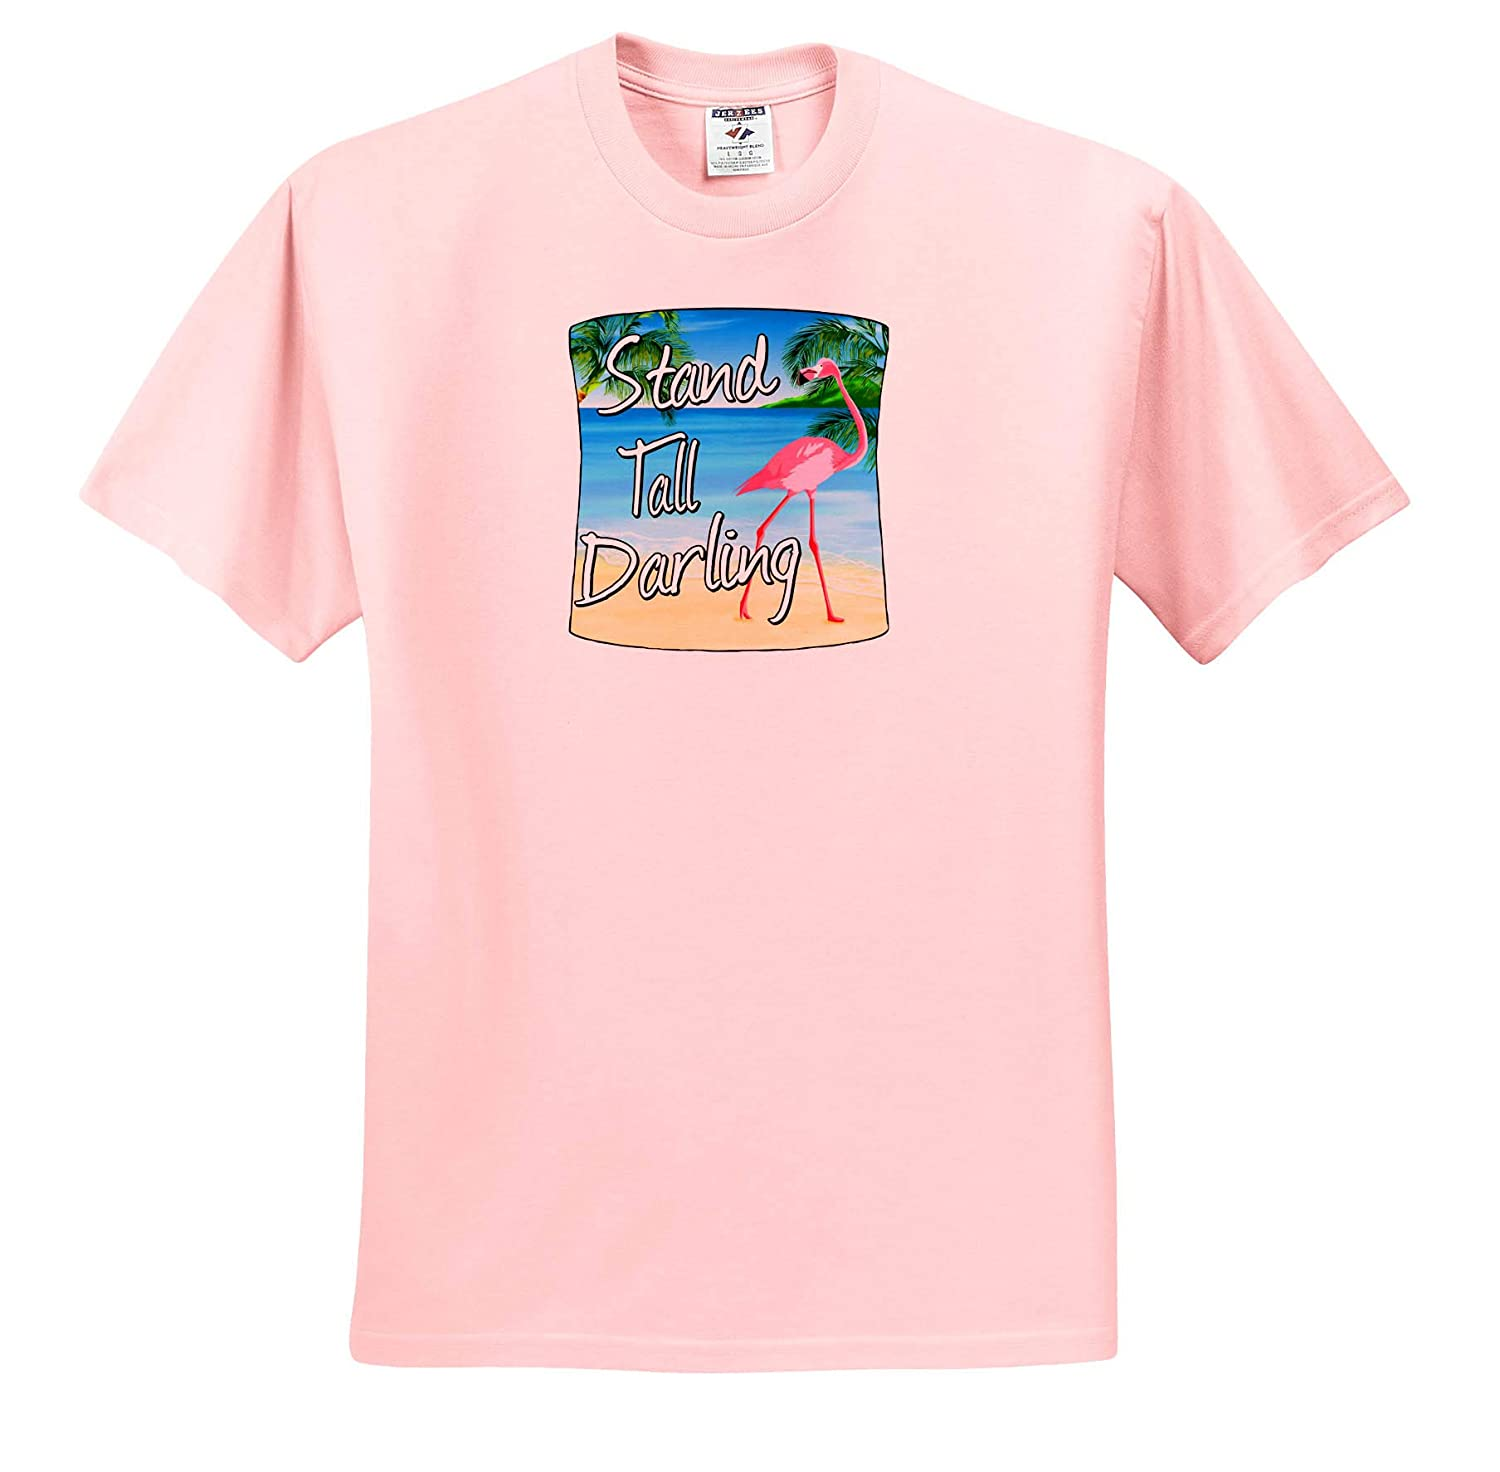 Stand Tall Darling 3dRose Macdonald Creative Studios - T-Shirts Beach Funny Beach Humor of a Pink Flamingo